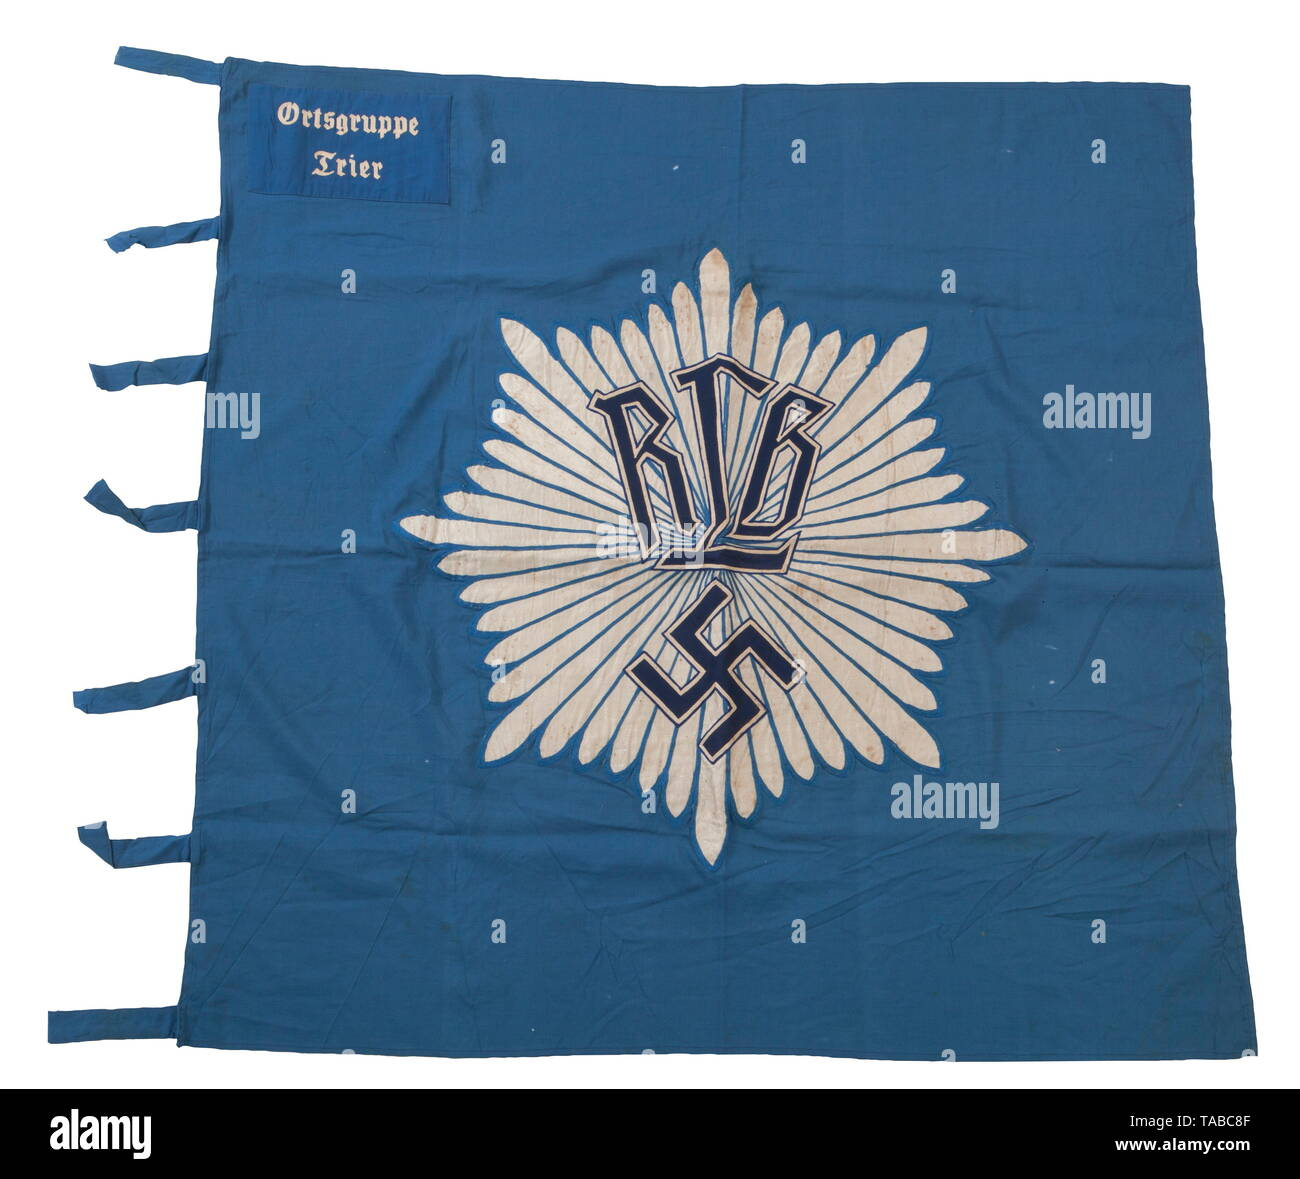 """An RLB unit flag, 1st pattern Double-sided, multi-piece, blue cotton construction. Navy blue cotton """"RLB"""" and swastika superimposed over chain stitched applied woven silver flat wire starburst rays mounted. Blue wool corner panel with white chain stitched """"Ortsgruppe Trier"""". Seven cloth attachment straps. Small holes and light staining. Approximately 120 x 120 cm. USA-lot, see page 4. historic, historical, Reichsluftschutzbund, State Air Protection Corps, organisation, organization, organizations, organisations, NS, National Socialism, Nazism, Third Reich, German Reich, Ger, Editorial-Use-Only Stock Photo"""